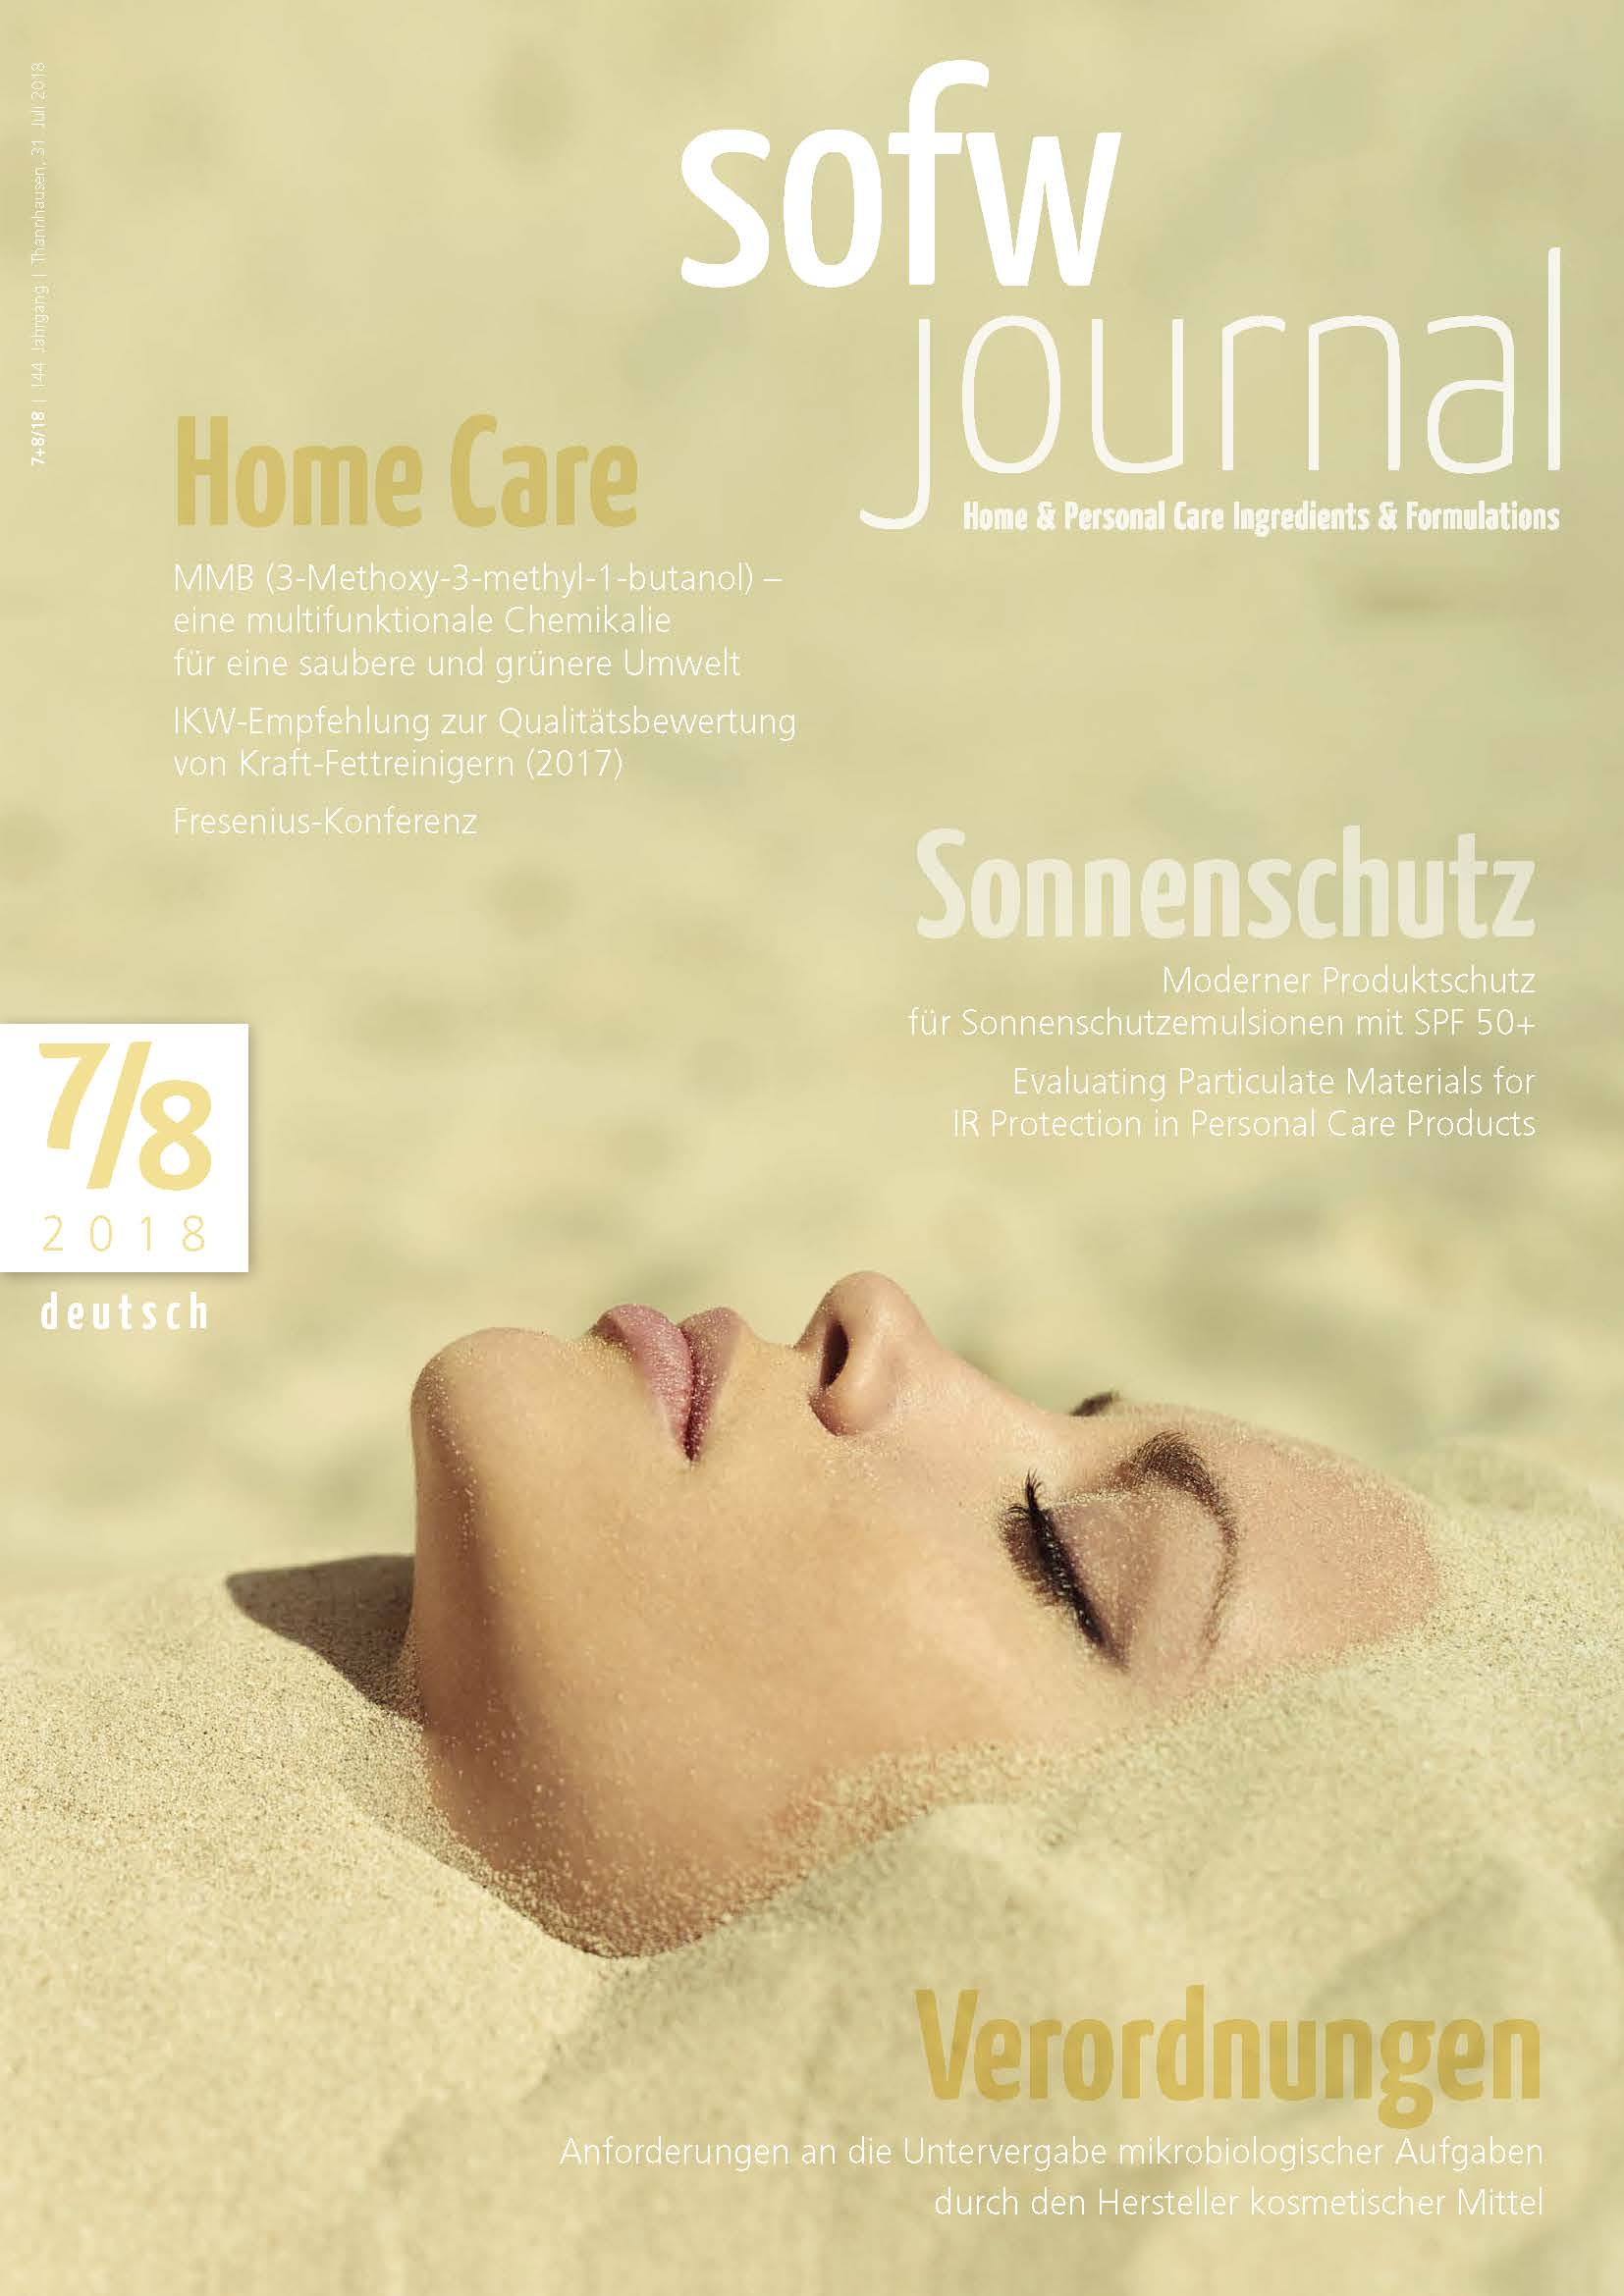 sofwjournal_de_2018_07_cover